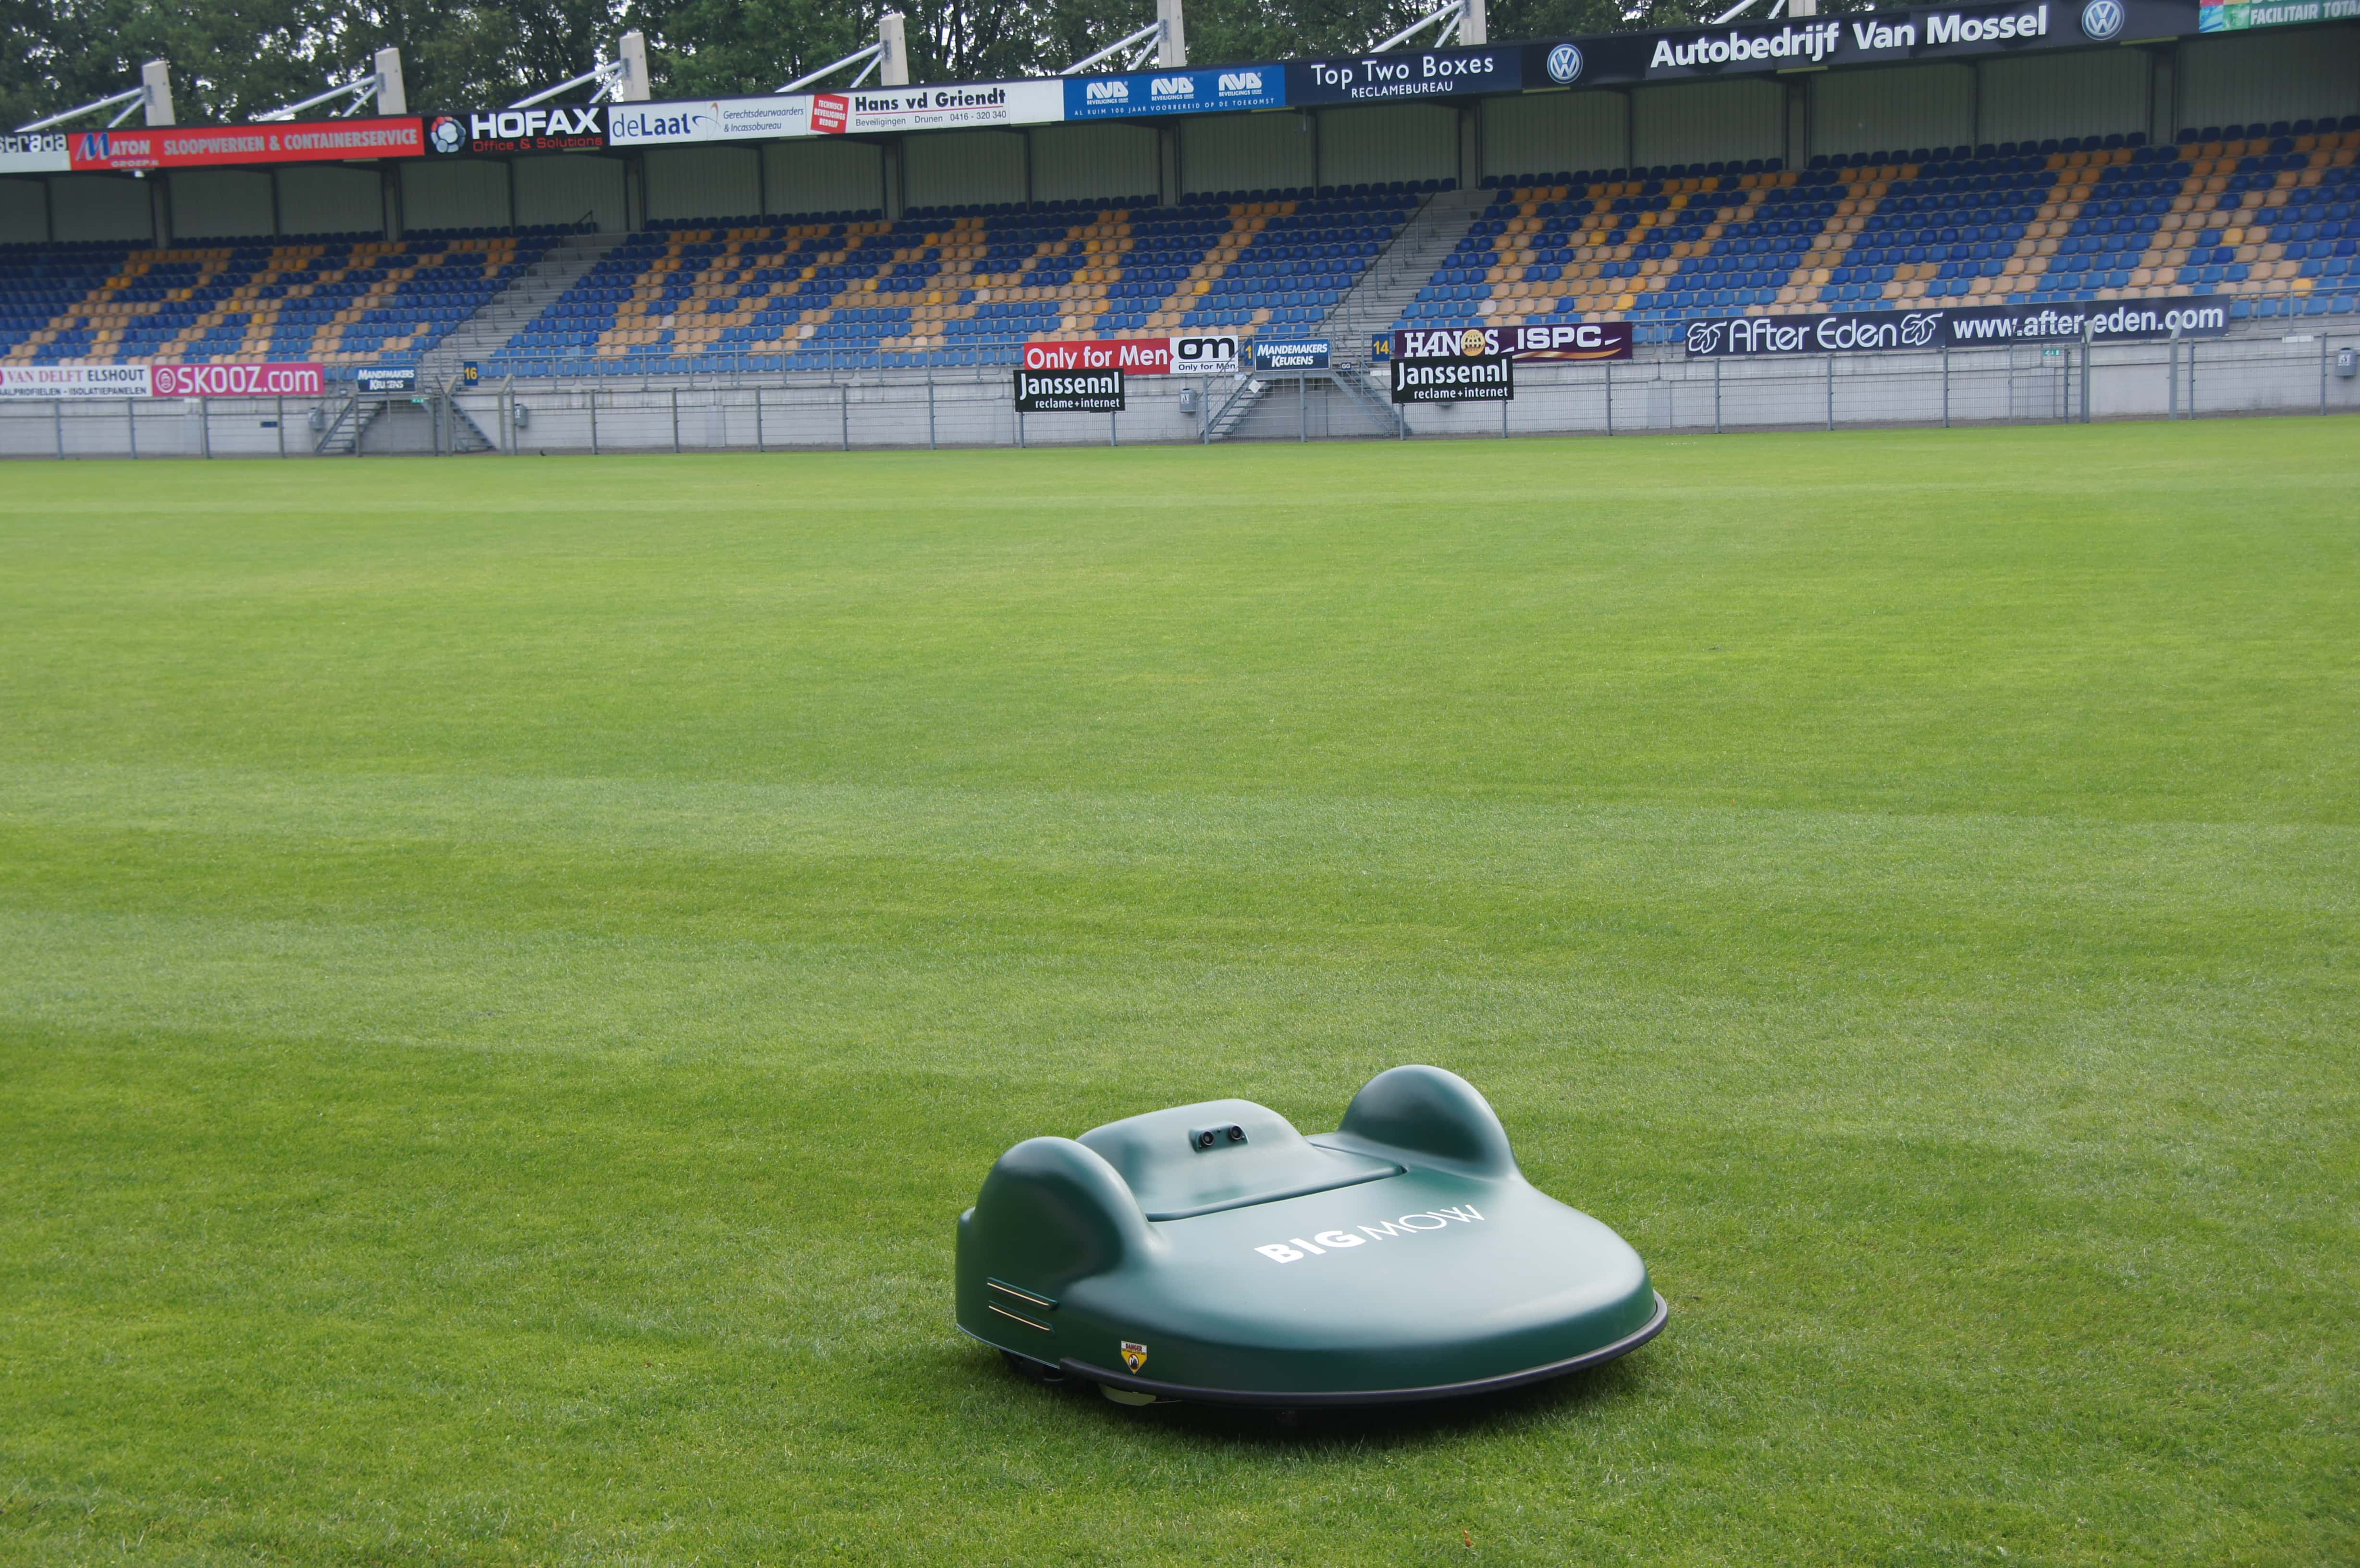 robotic mower for football pitch maintenance